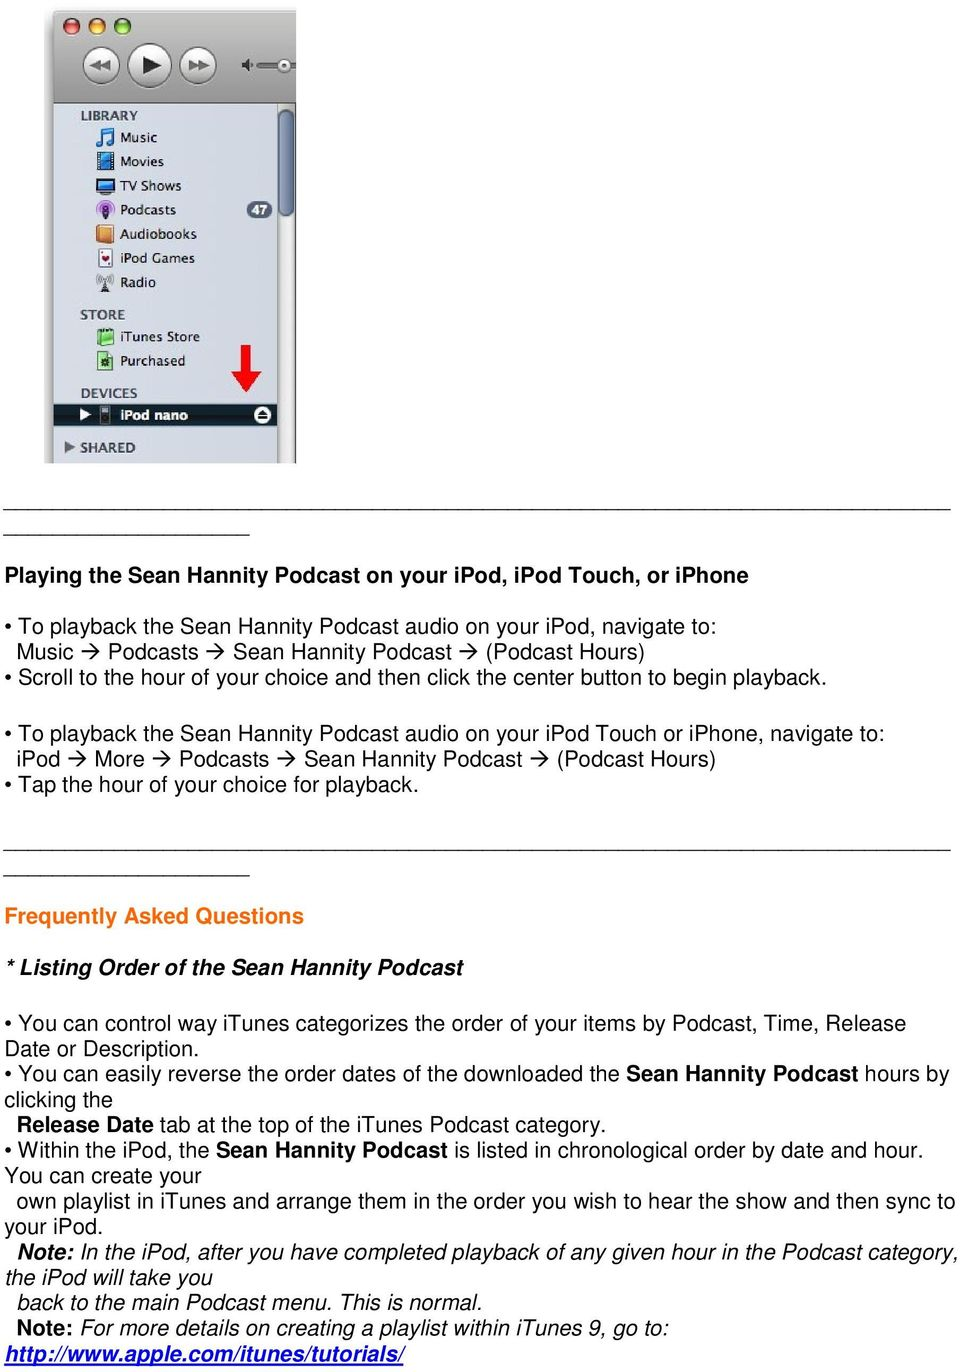 To playback the Sean Hannity Podcast audio on your ipod Touch or iphone, navigate to: ipod More Podcasts Sean Hannity Podcast (Podcast Hours) Tap the hour of your choice for playback.